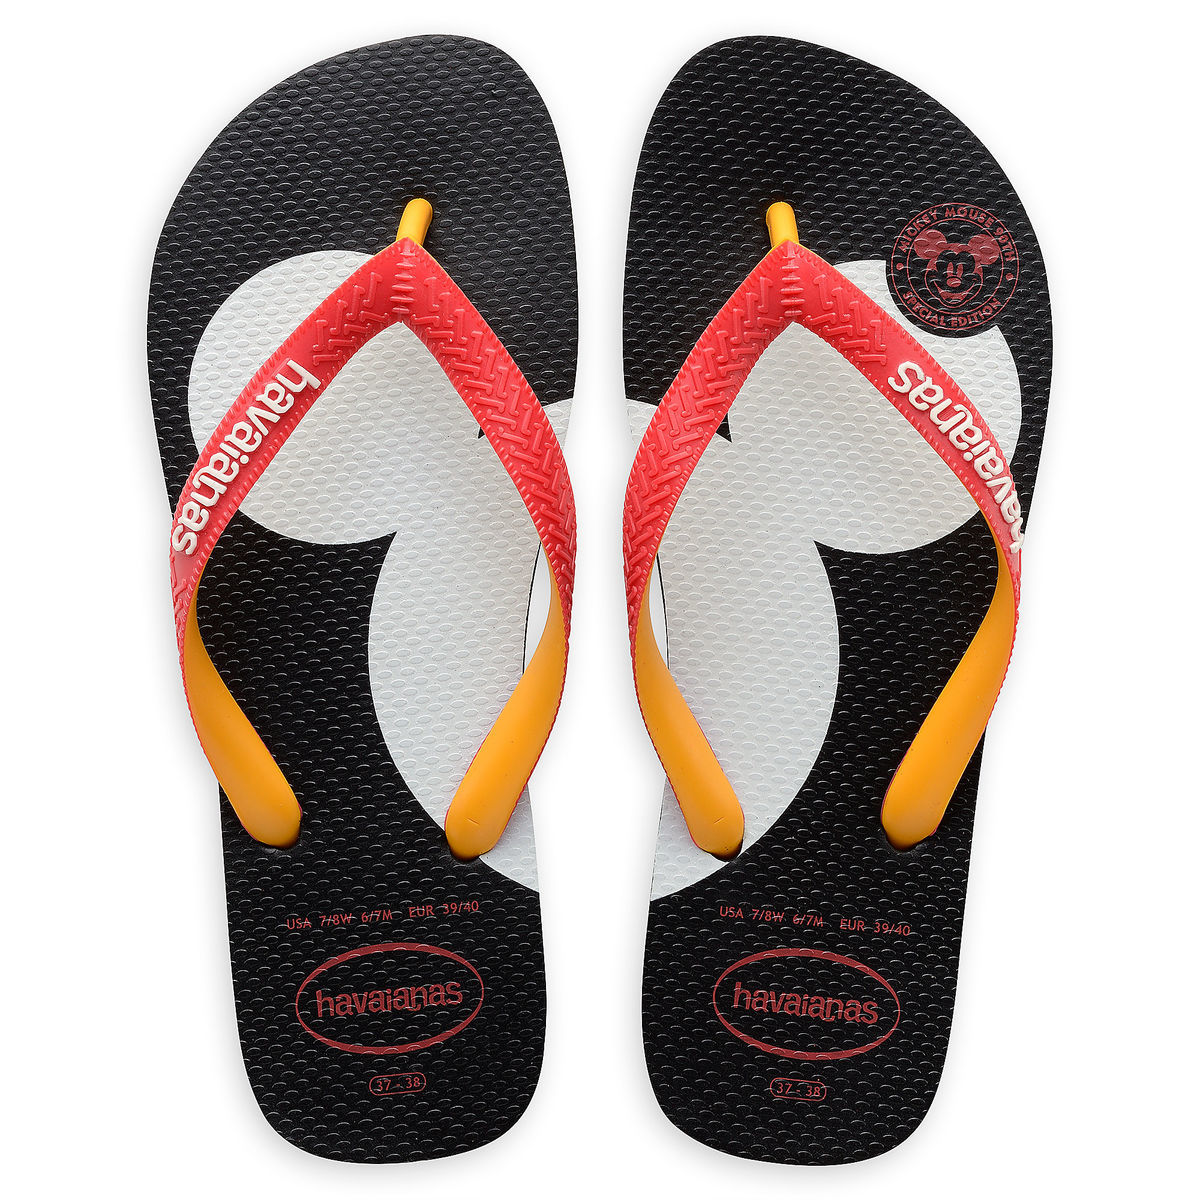 004d998ab91f Product Image of Mickey Mouse Silhouette Flip Flops for Adults by Havaianas    1